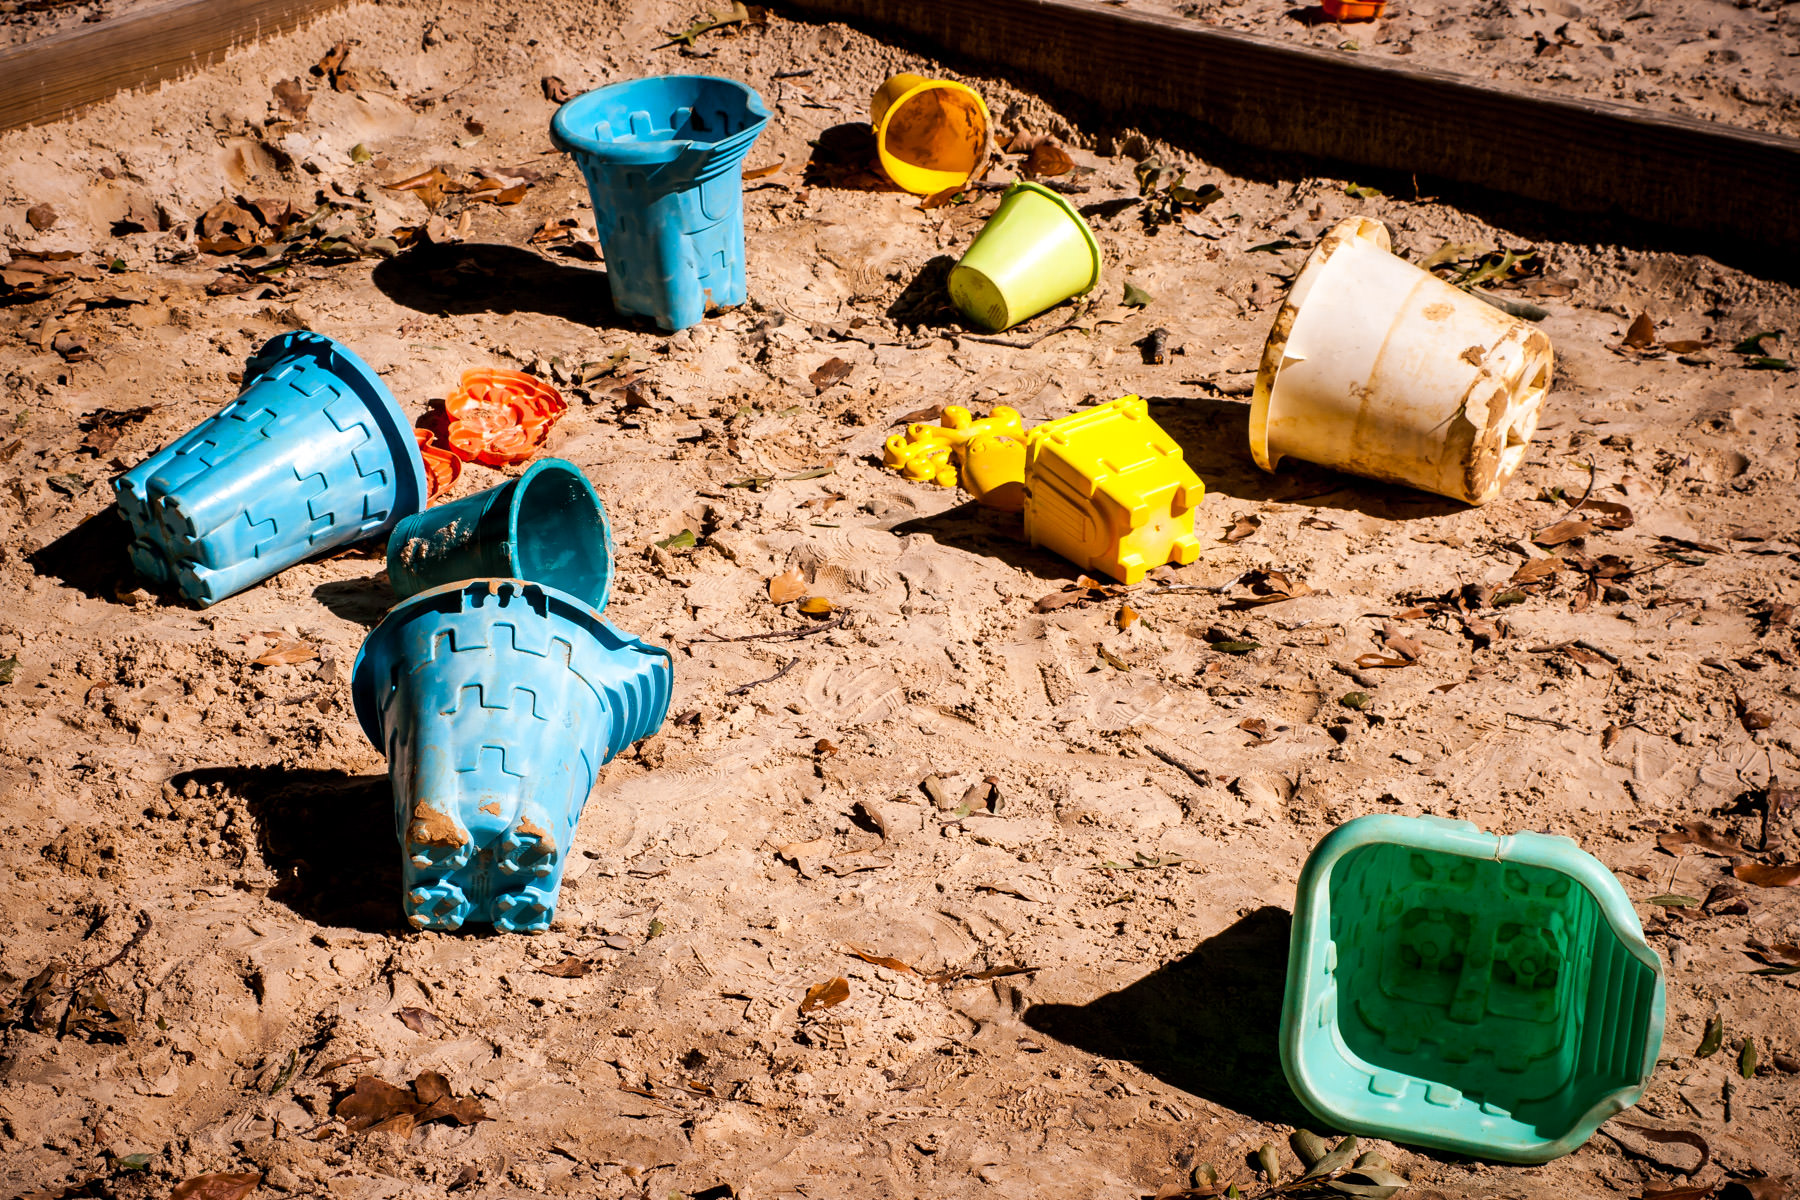 Sandcastle-making implements in a playground at Caldwell Zoo, Tyler, Texas.